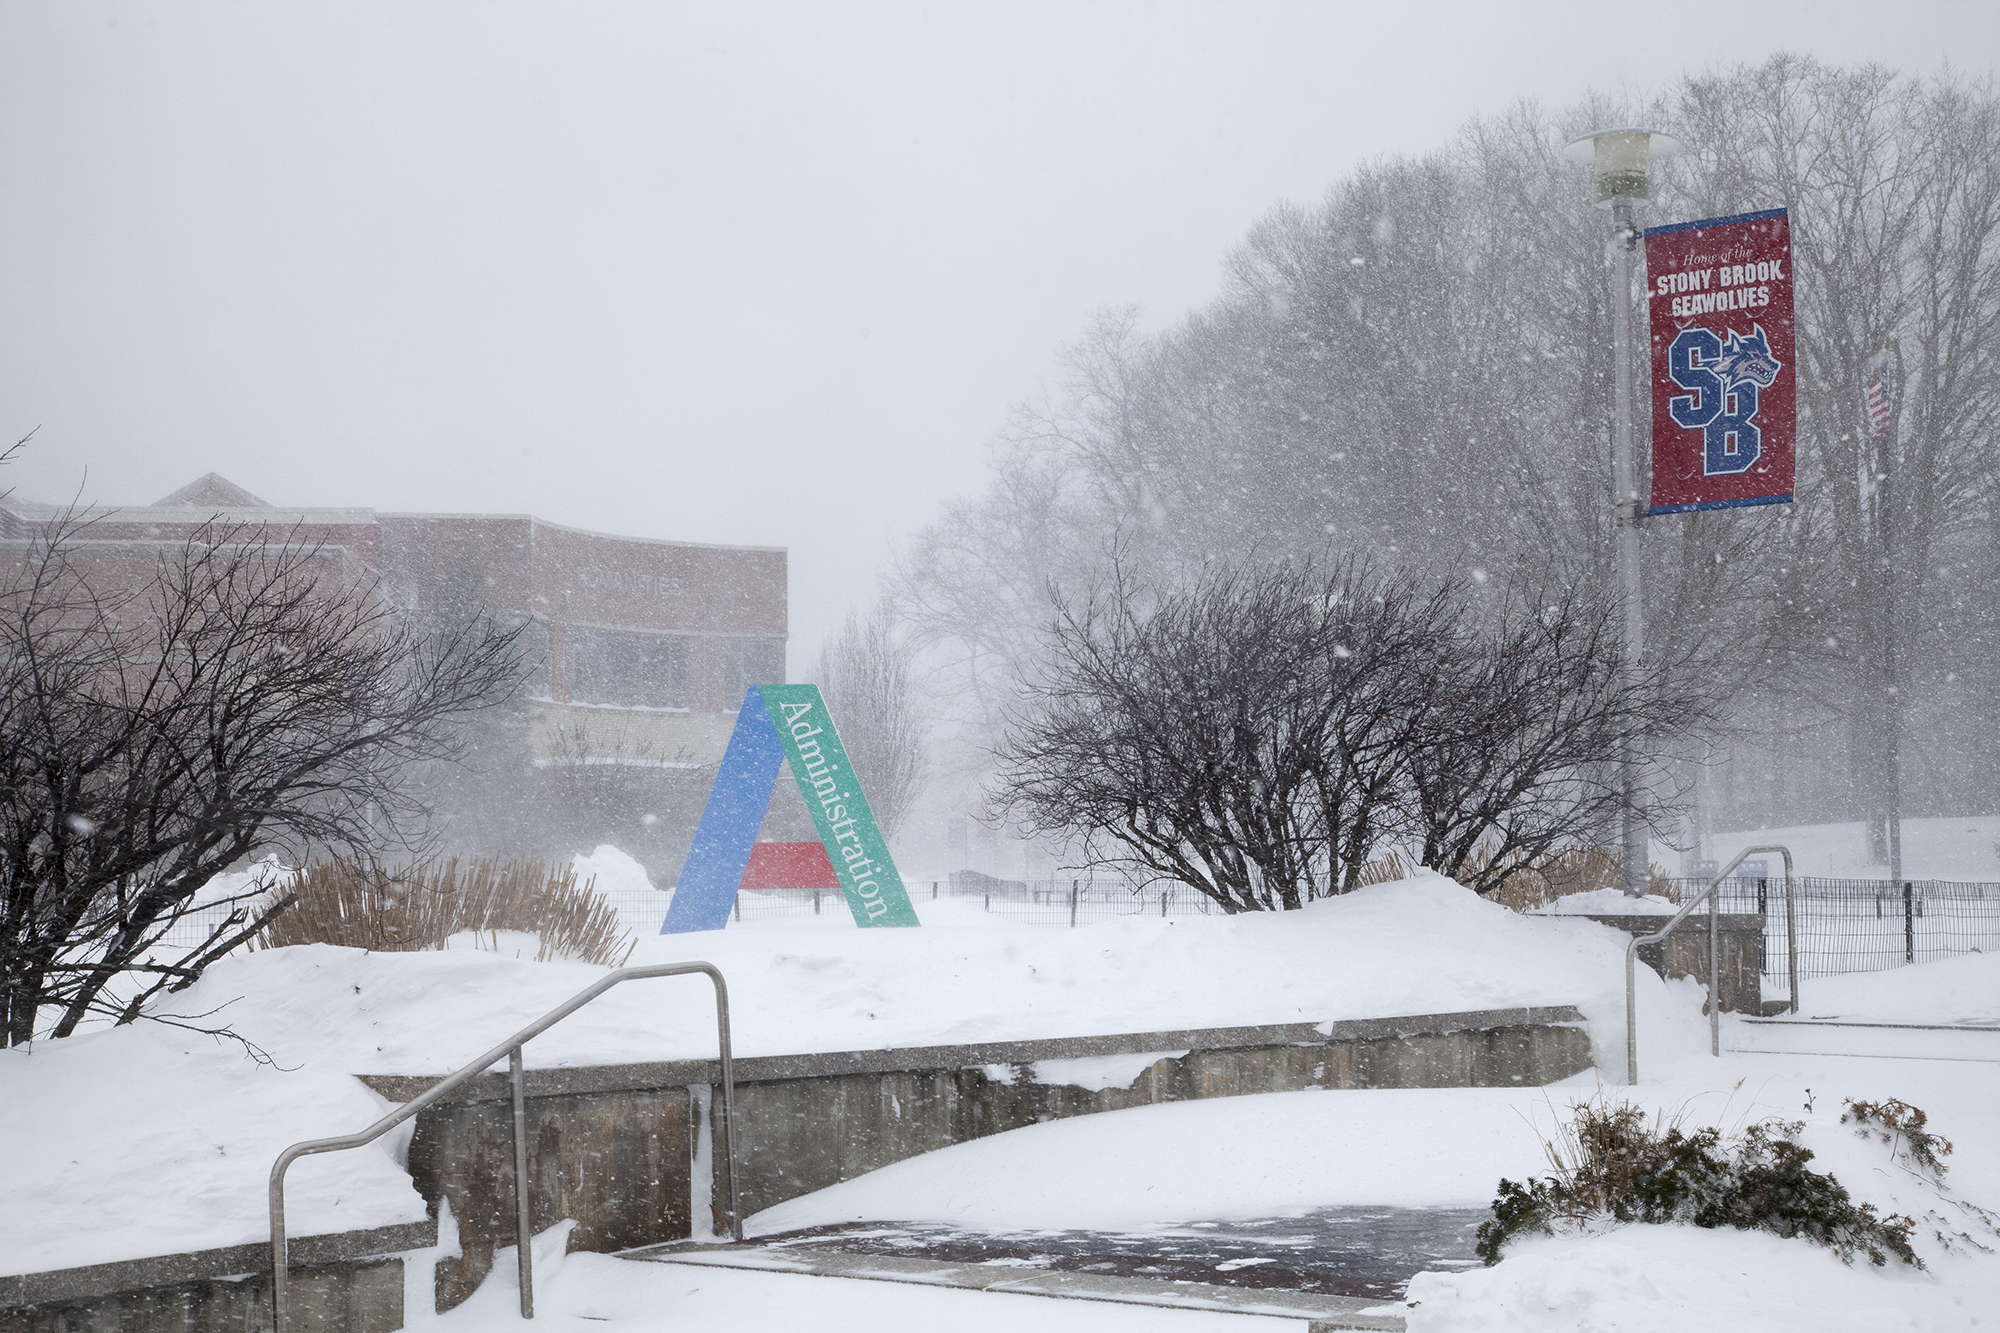 The Administration building at Stony Brook University during Winter Storm Jonas on Saturday, Jan. 23. CHRISTOPHER CAMERON/THE STATESMAN